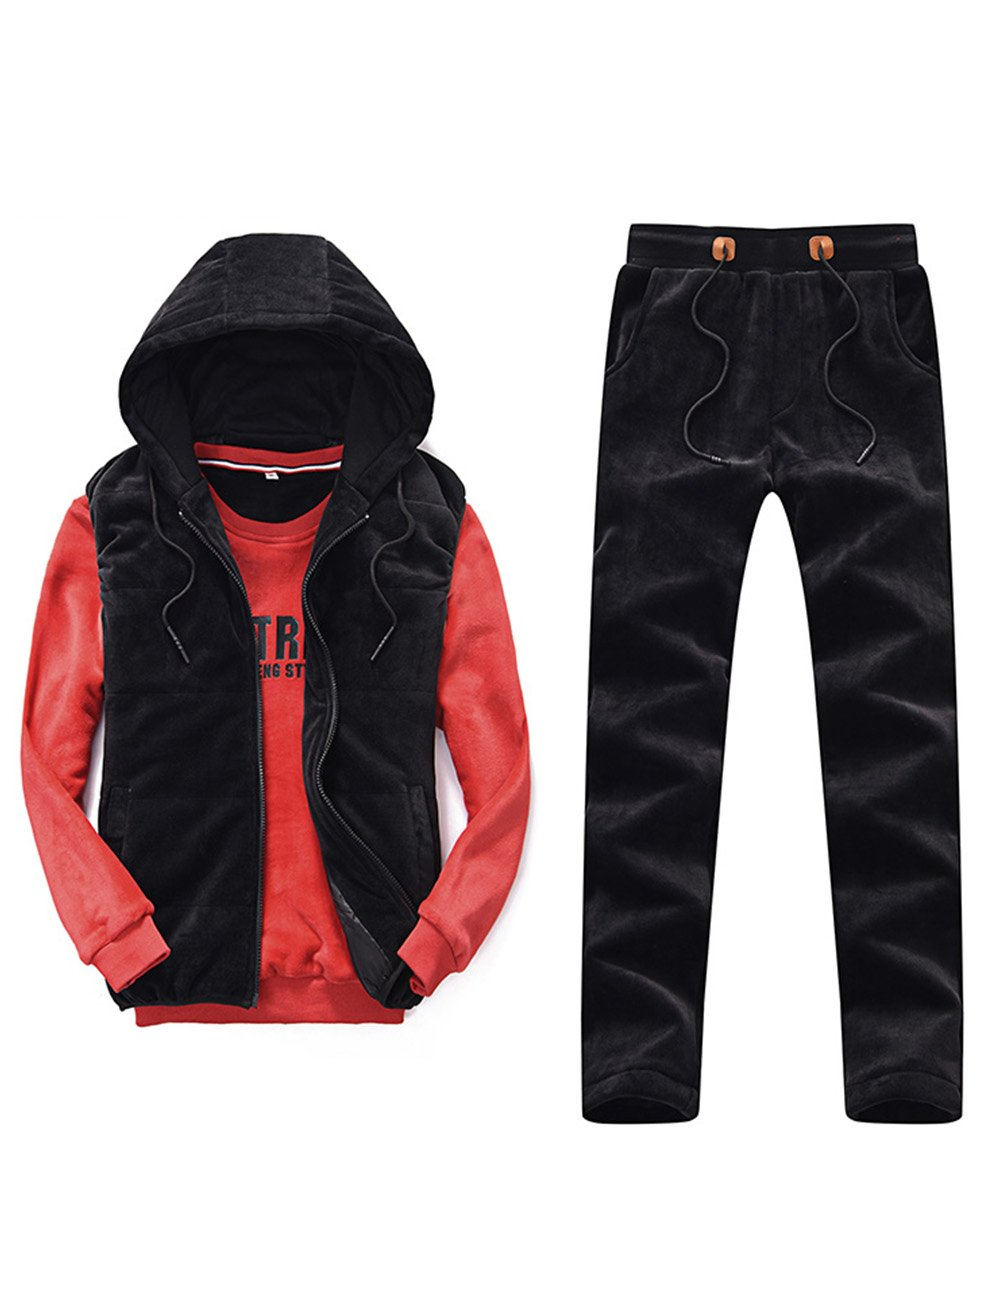 TAPOO Men's Casual Suit Winter Outwear Tracksuit (Vestcoat+clothes+pants) (Medium, Red)